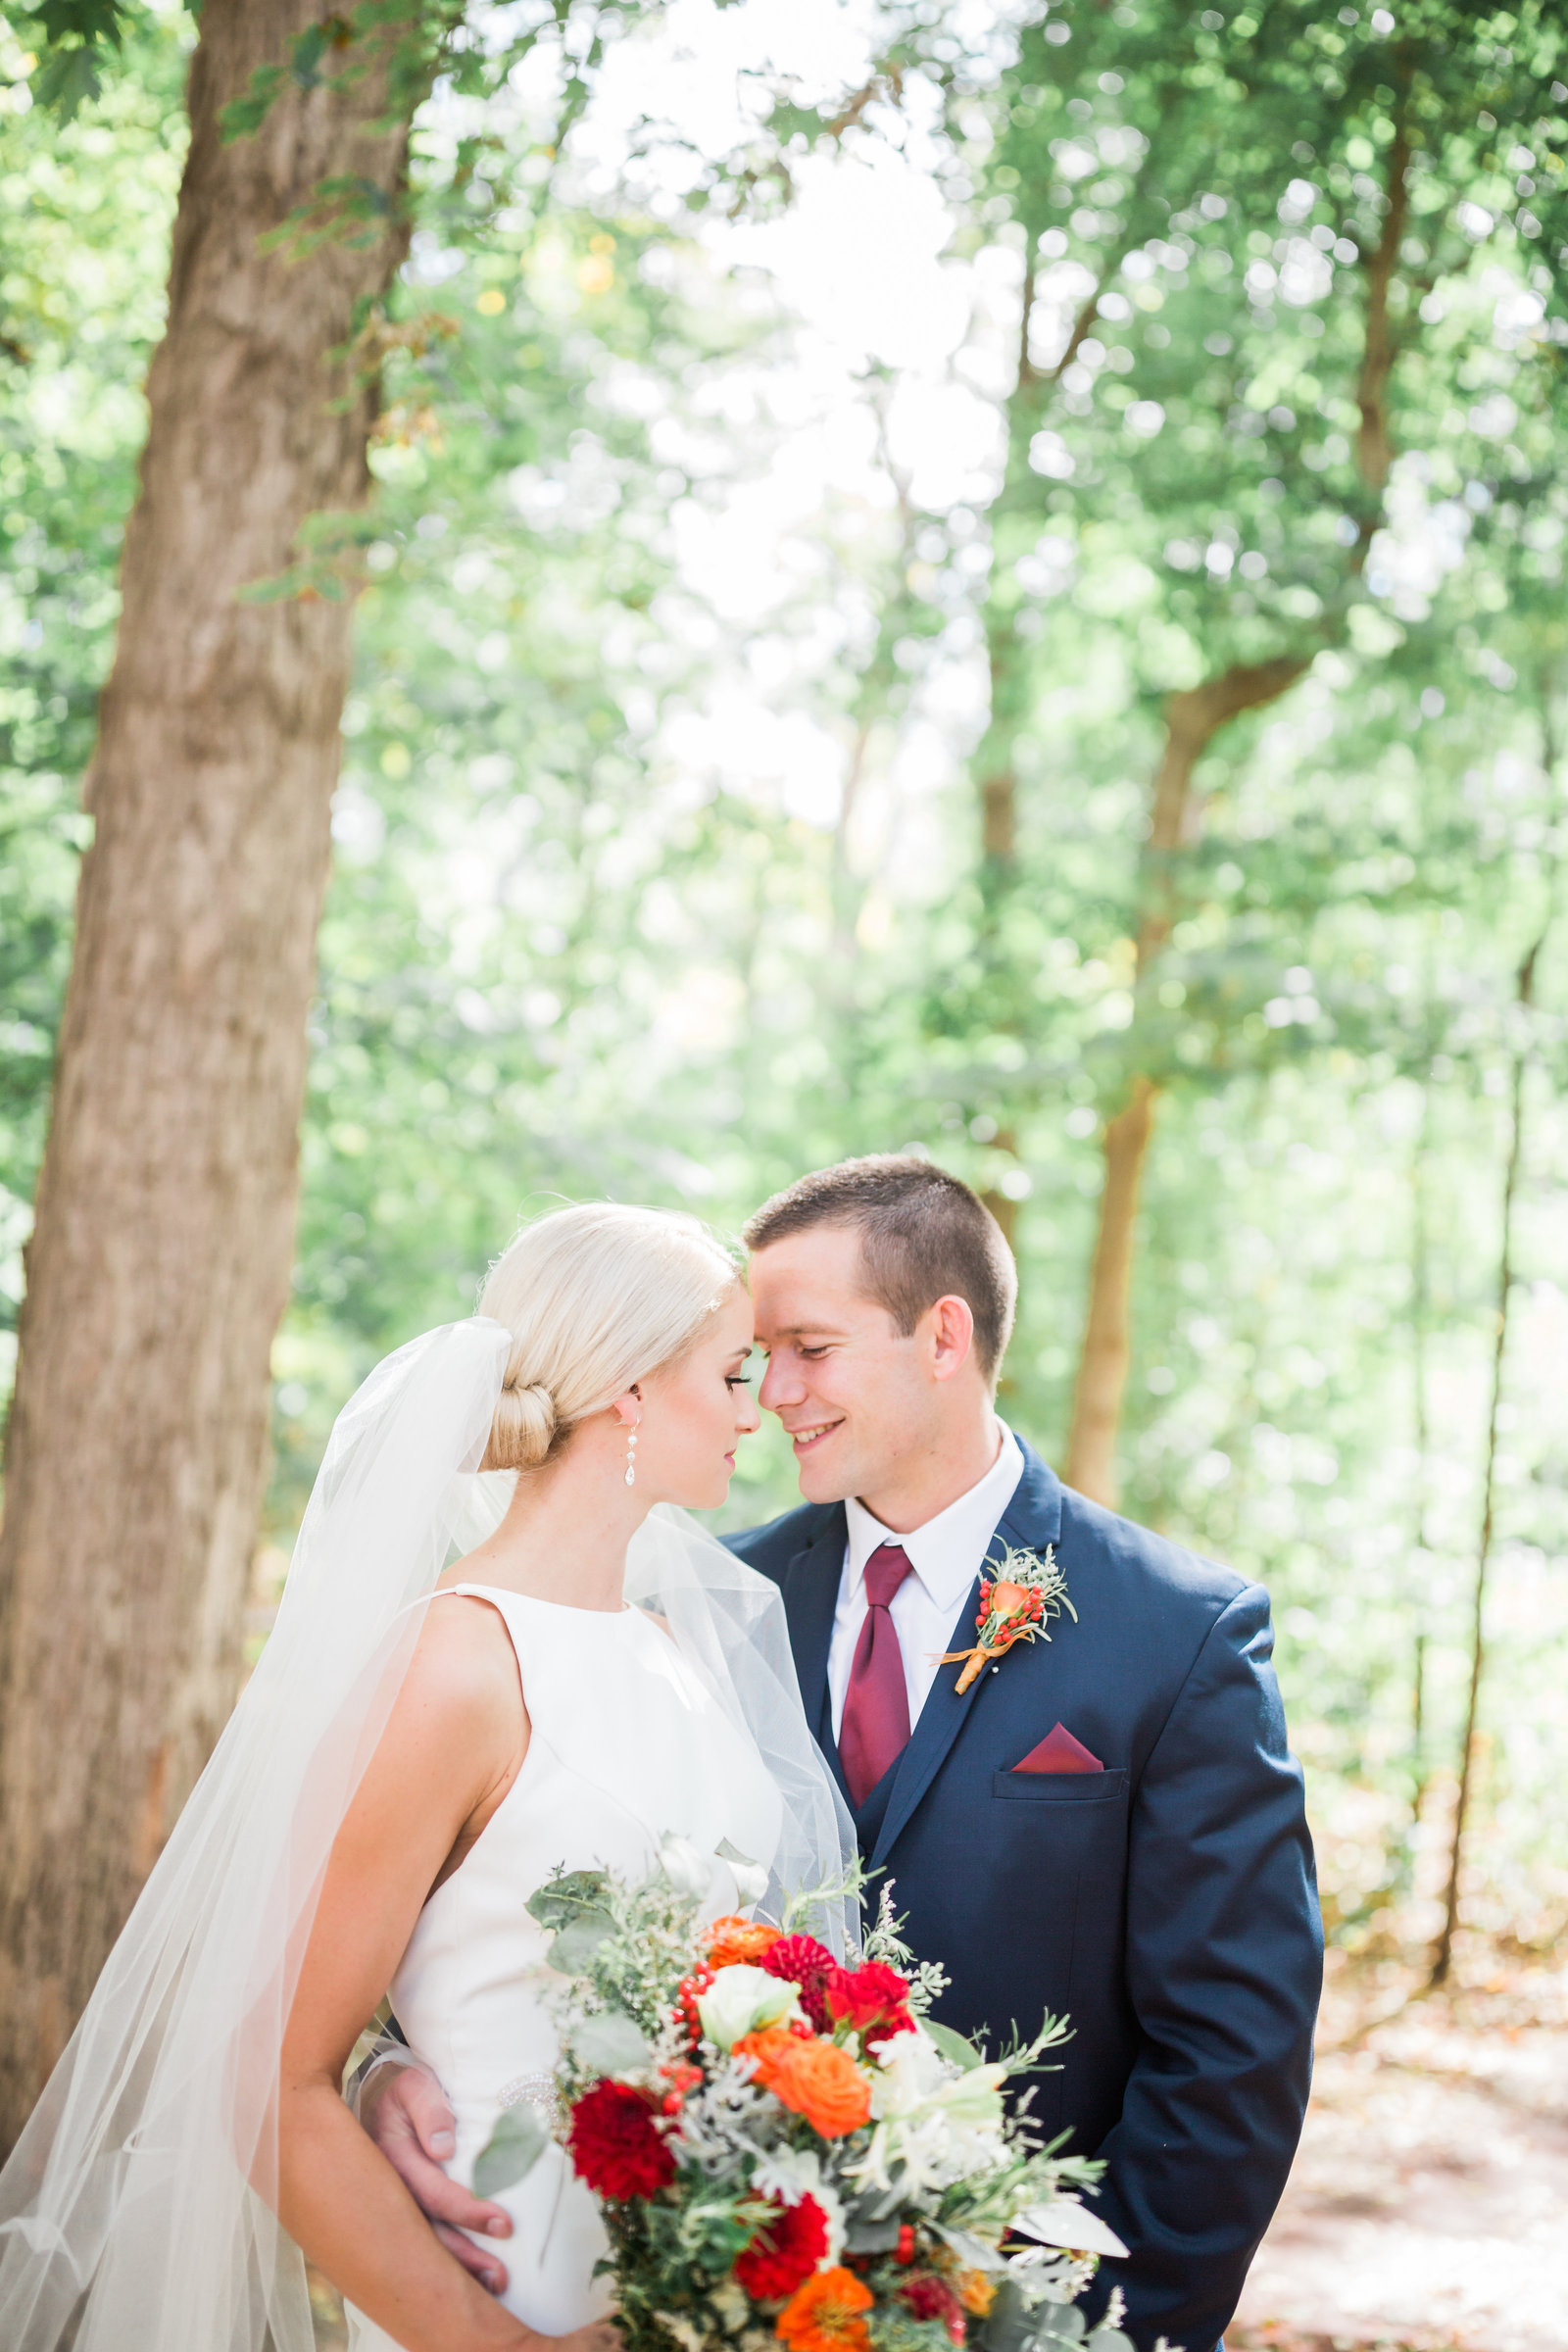 teresa schmidt photography-100014